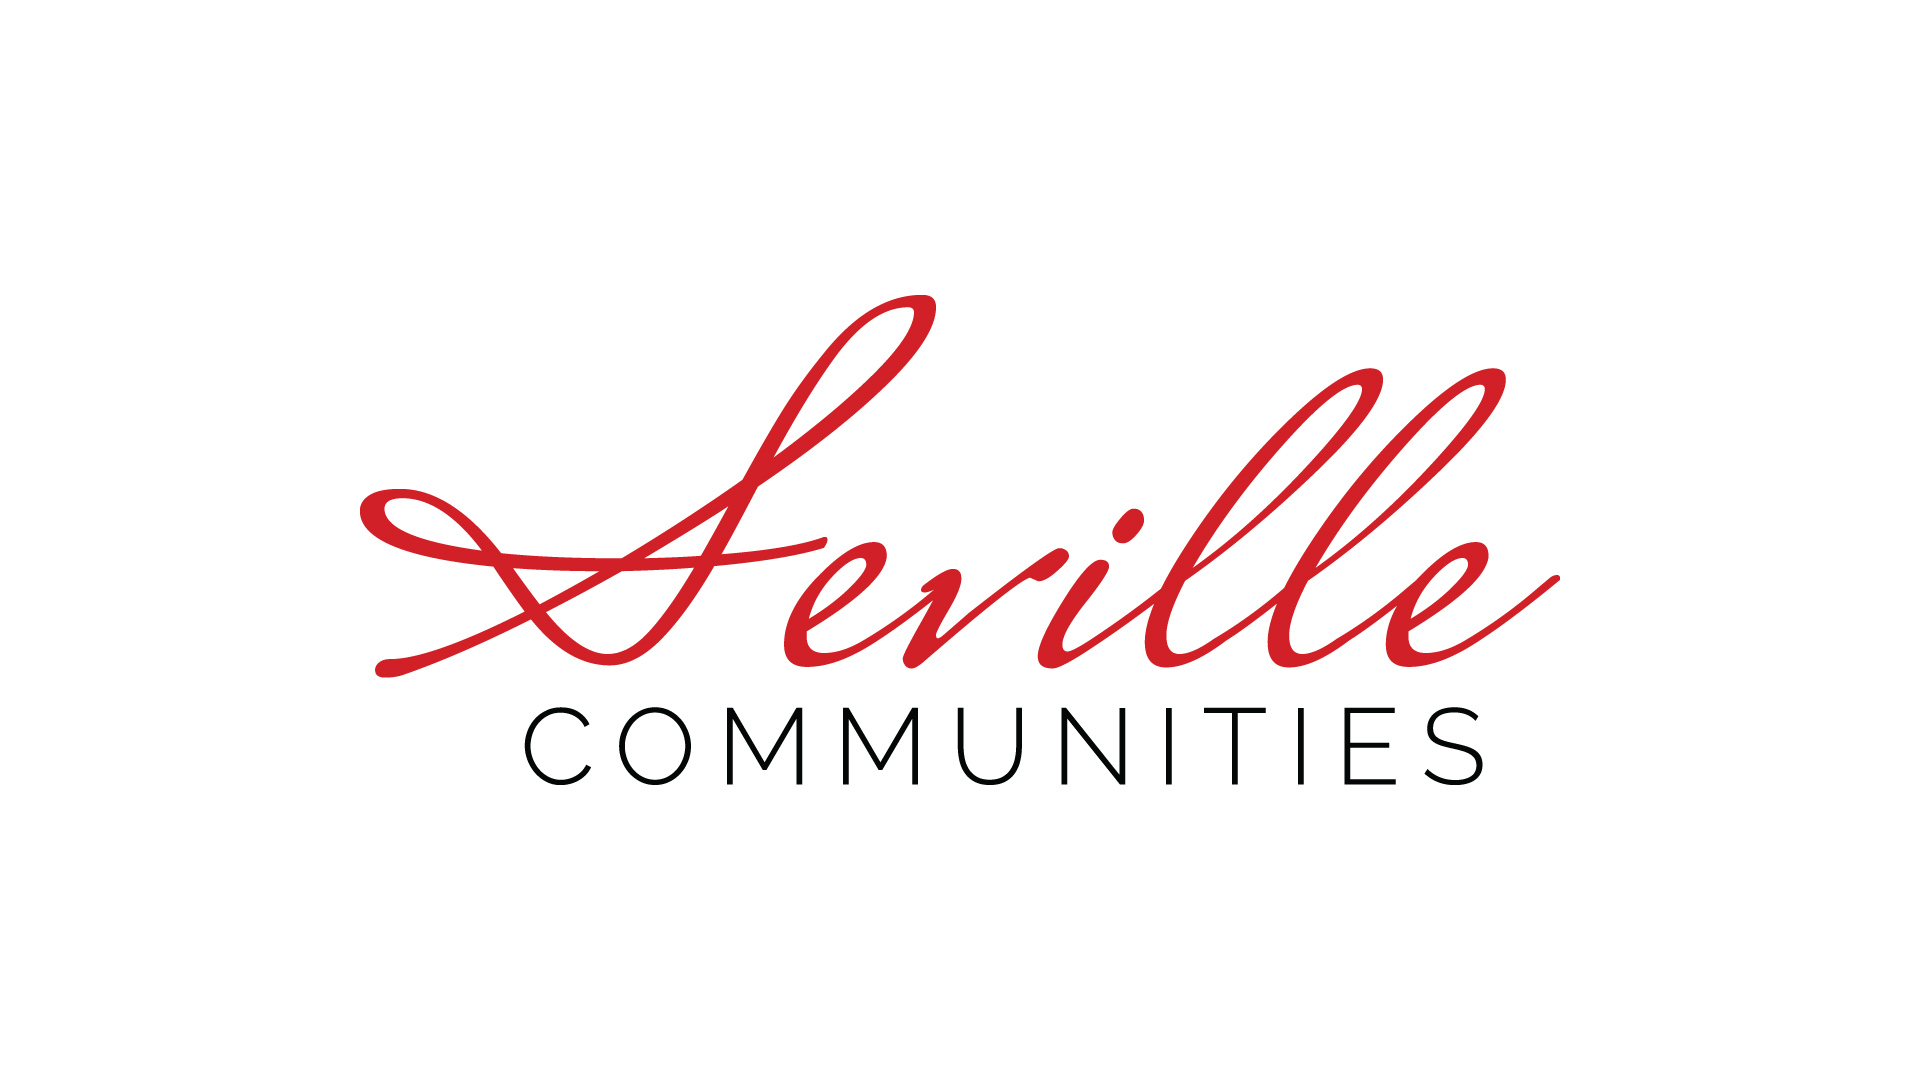 Speros Web Design - Seville Communities